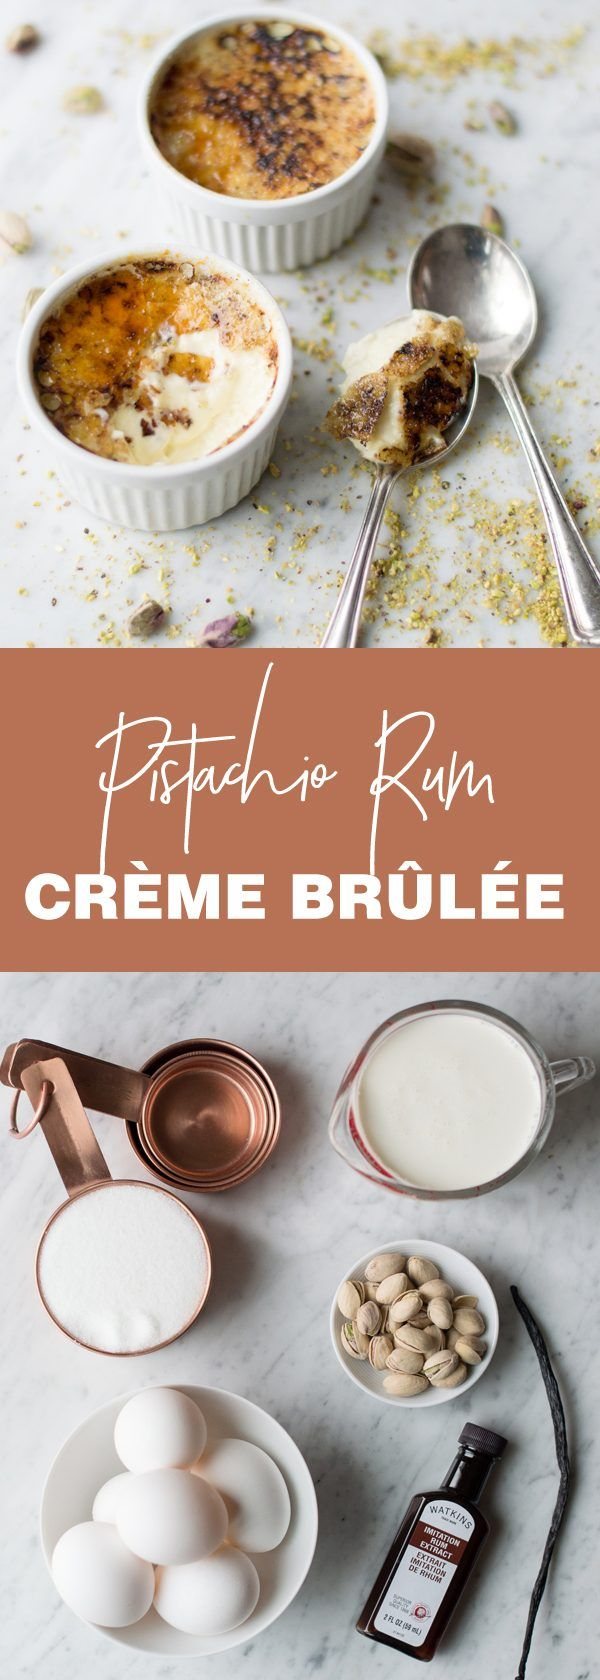 Pistachio Creme Brulee knocks ordinary creme brulee out of the park. A must try! (Favorite Desserts Creme Brulee) #cremebrulée